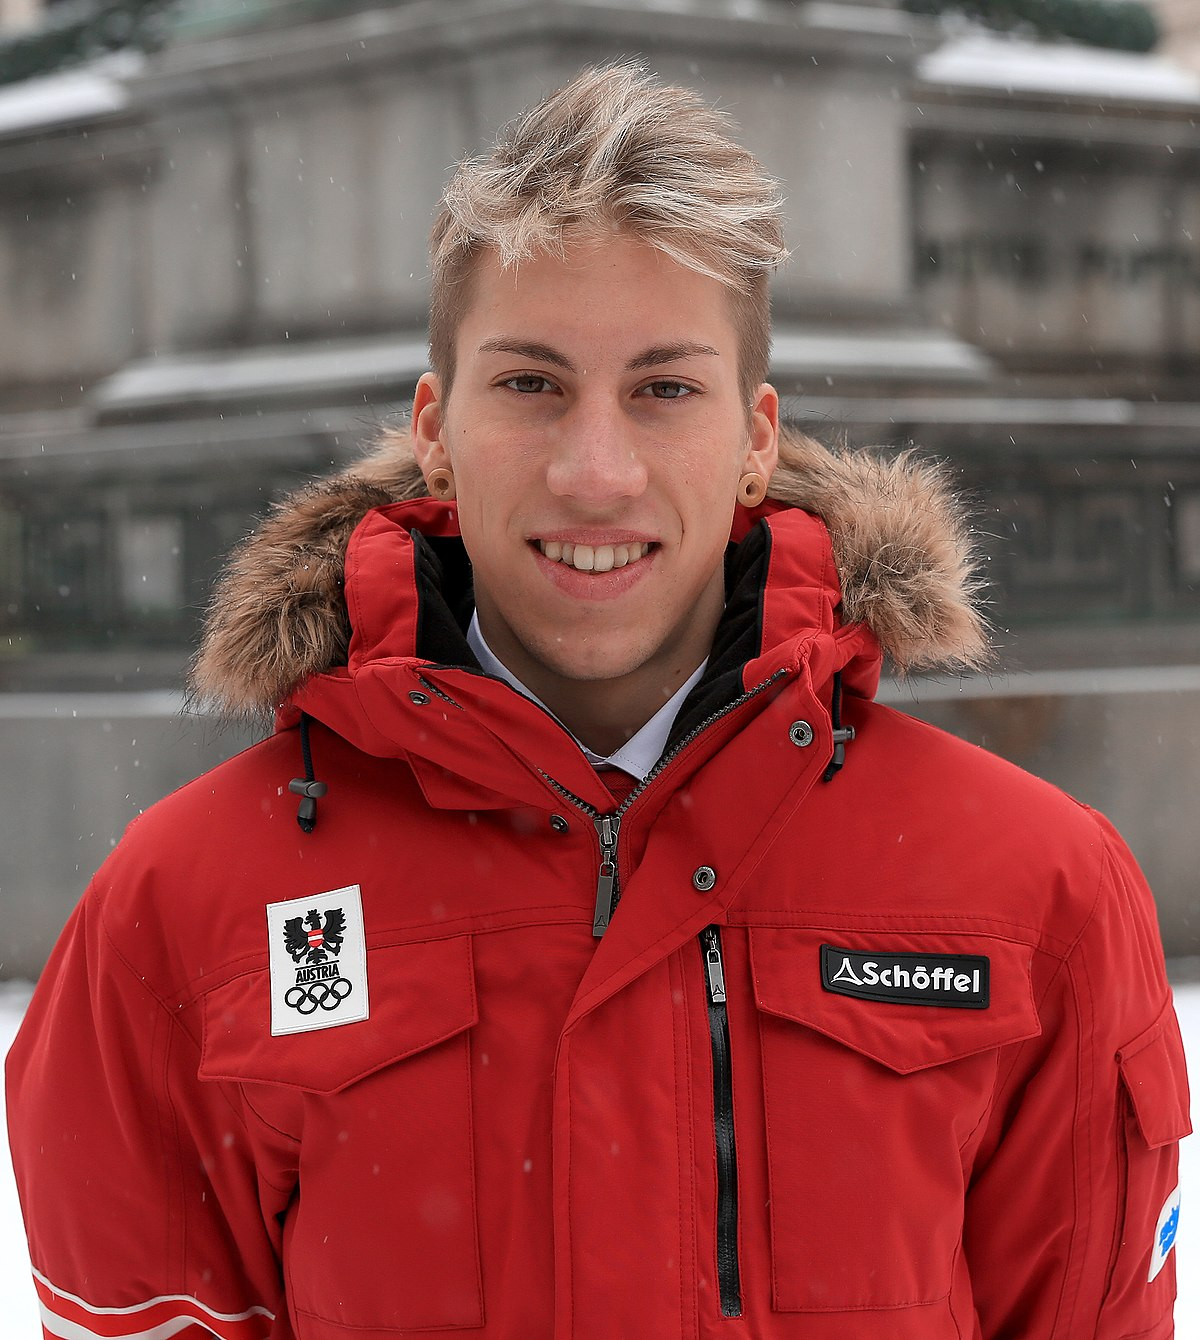 Consider, that Austria sex olympics your place